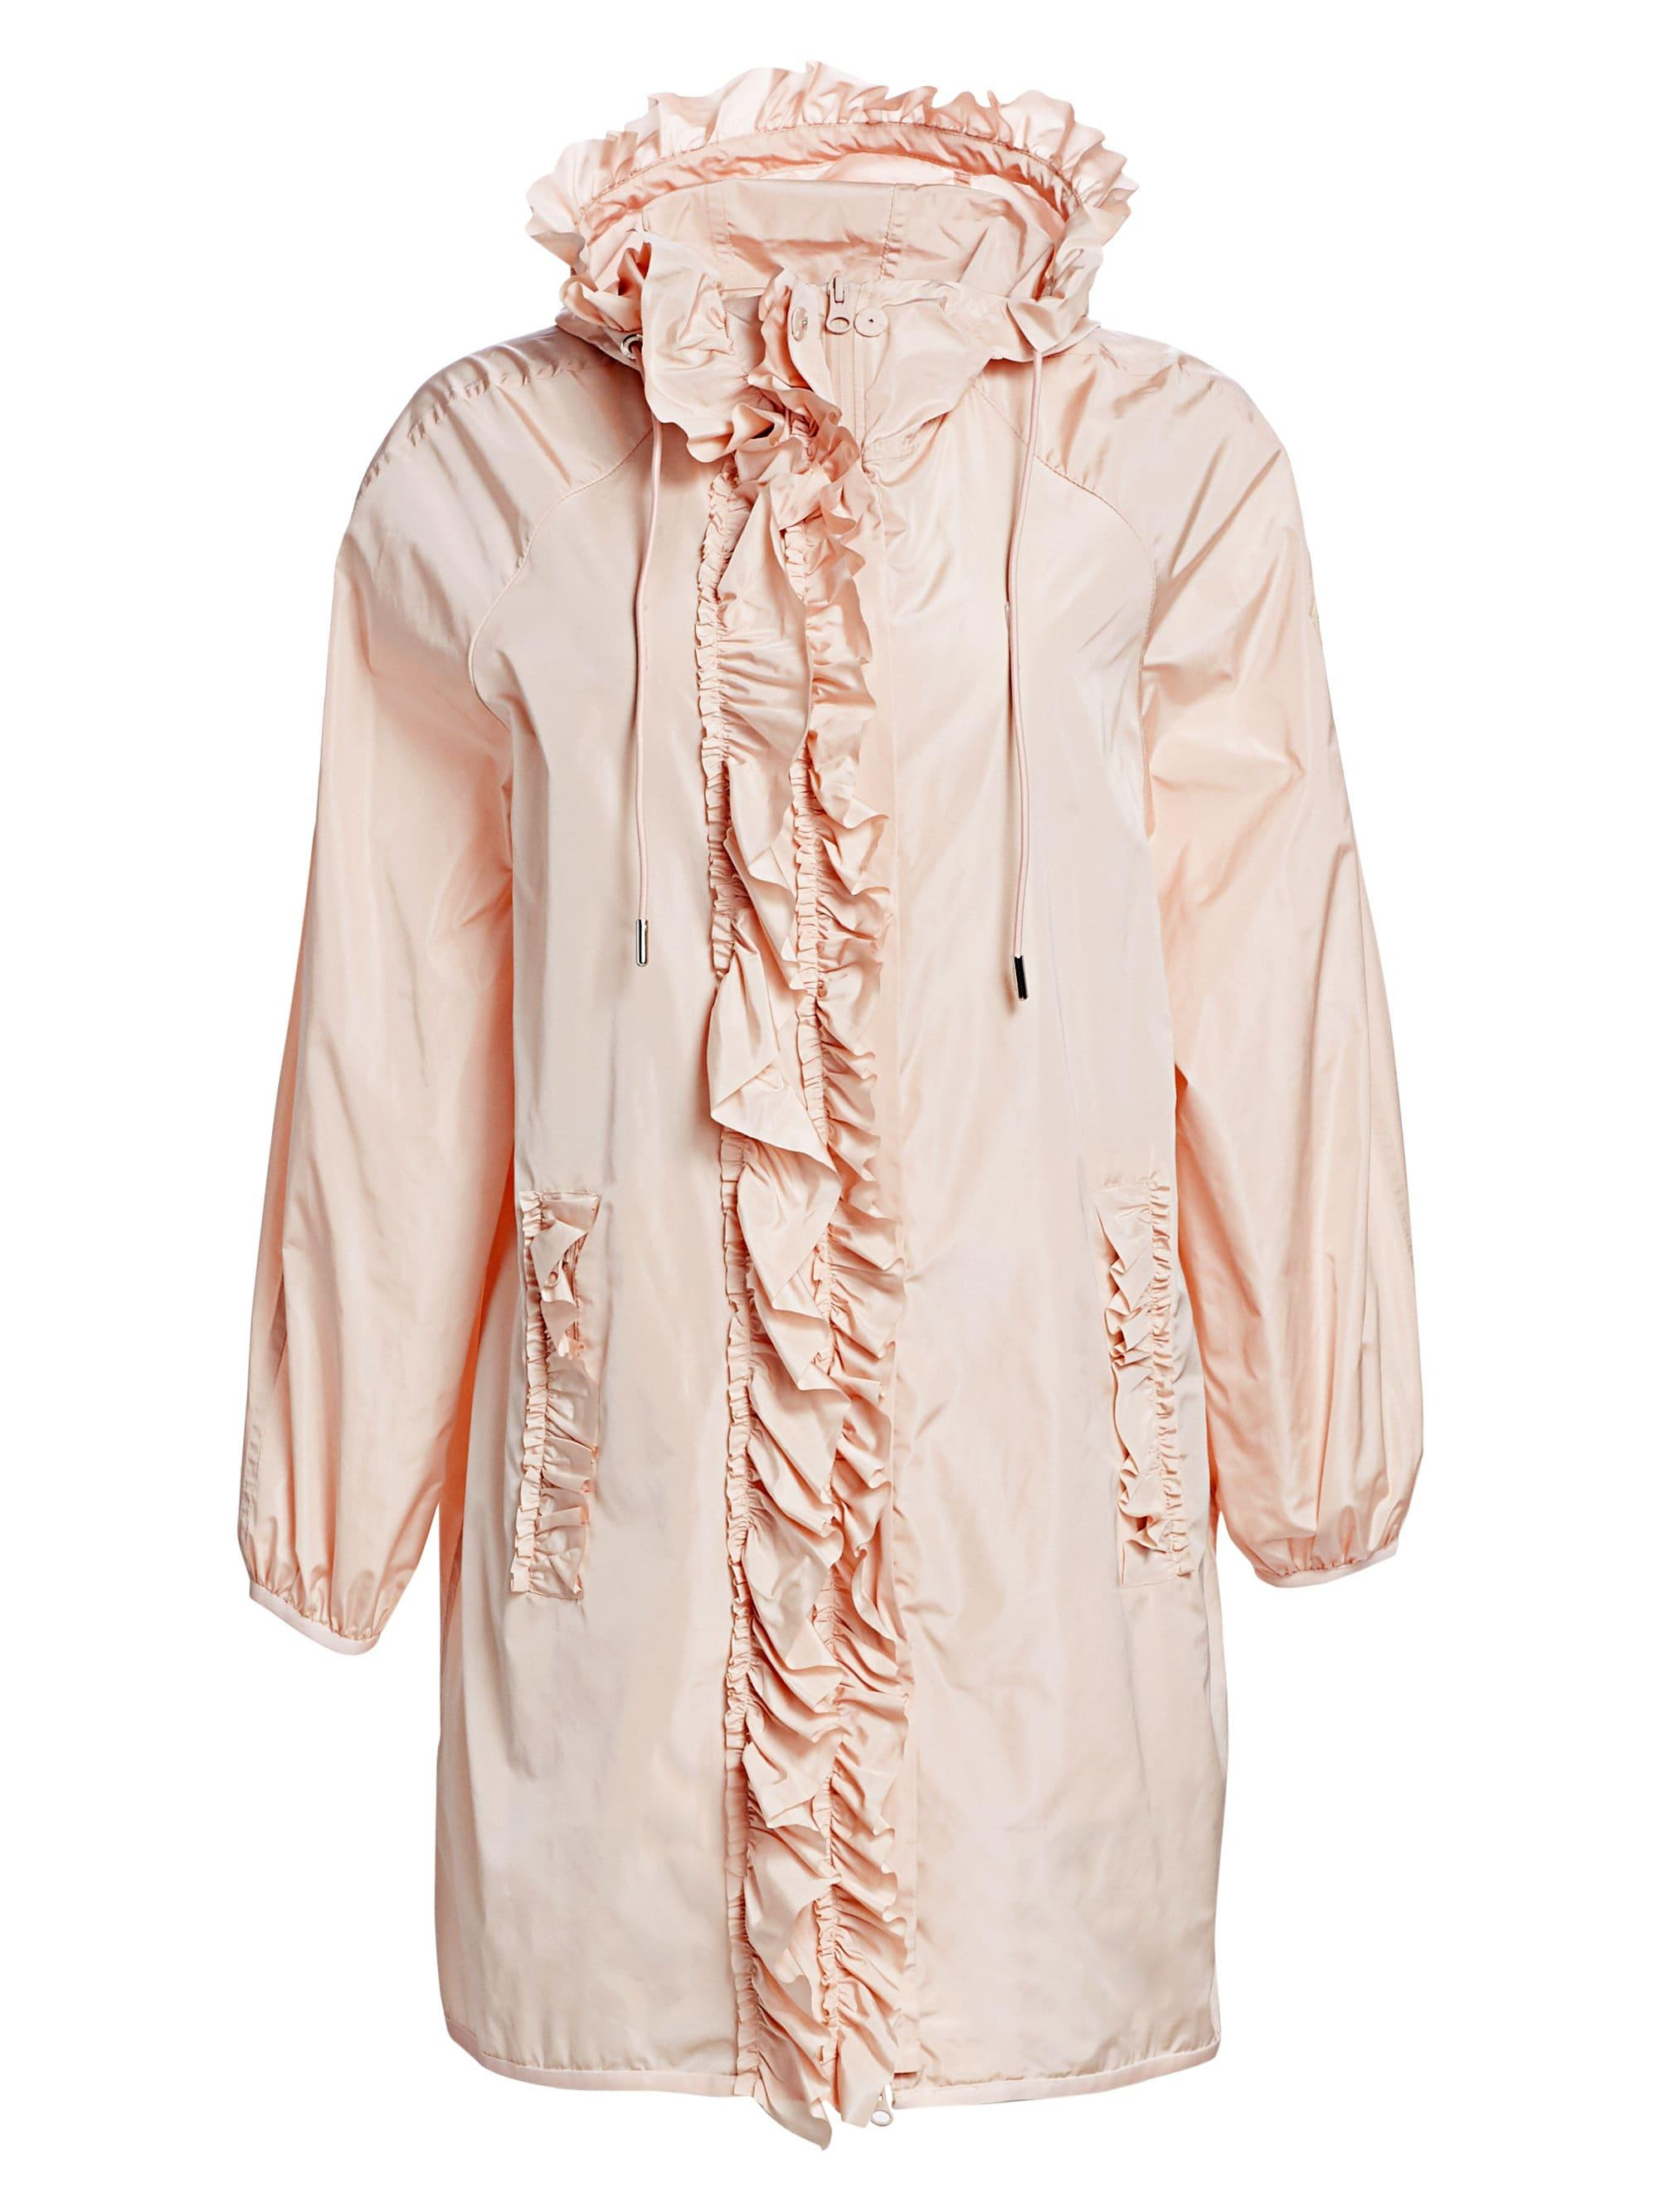 b43a5484b909 Lyst - Moncler Genius 4 Moncler Simone Rocha Ruffled Jacket in Pink